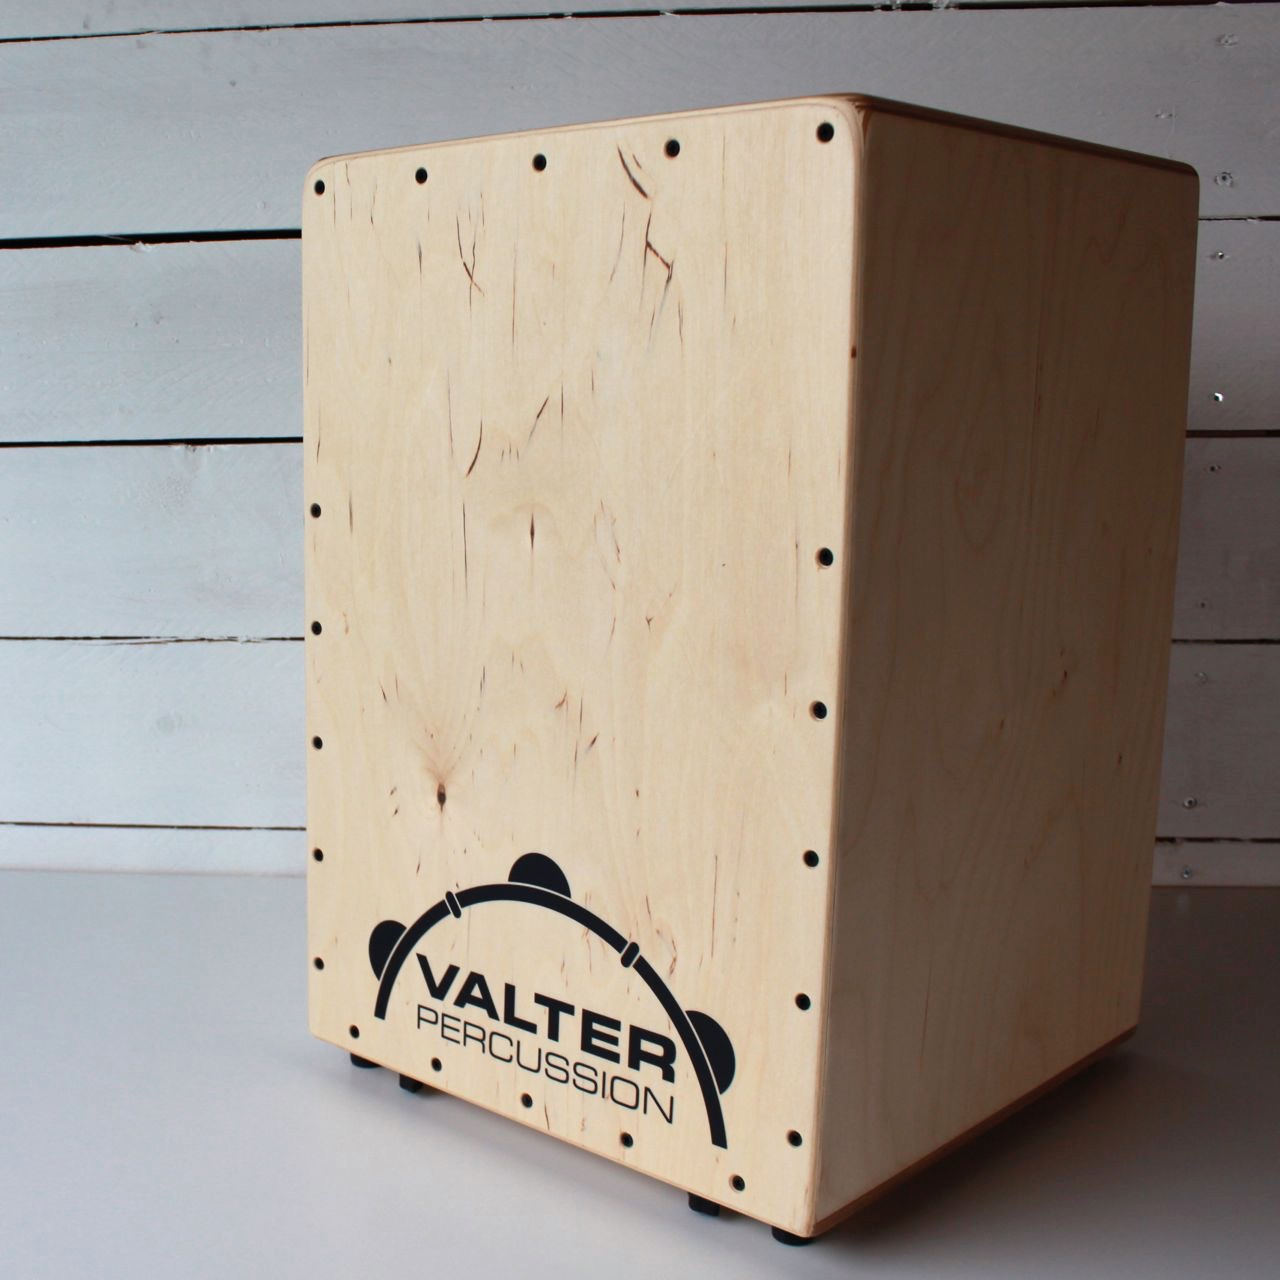 Valter Percussion BigBox